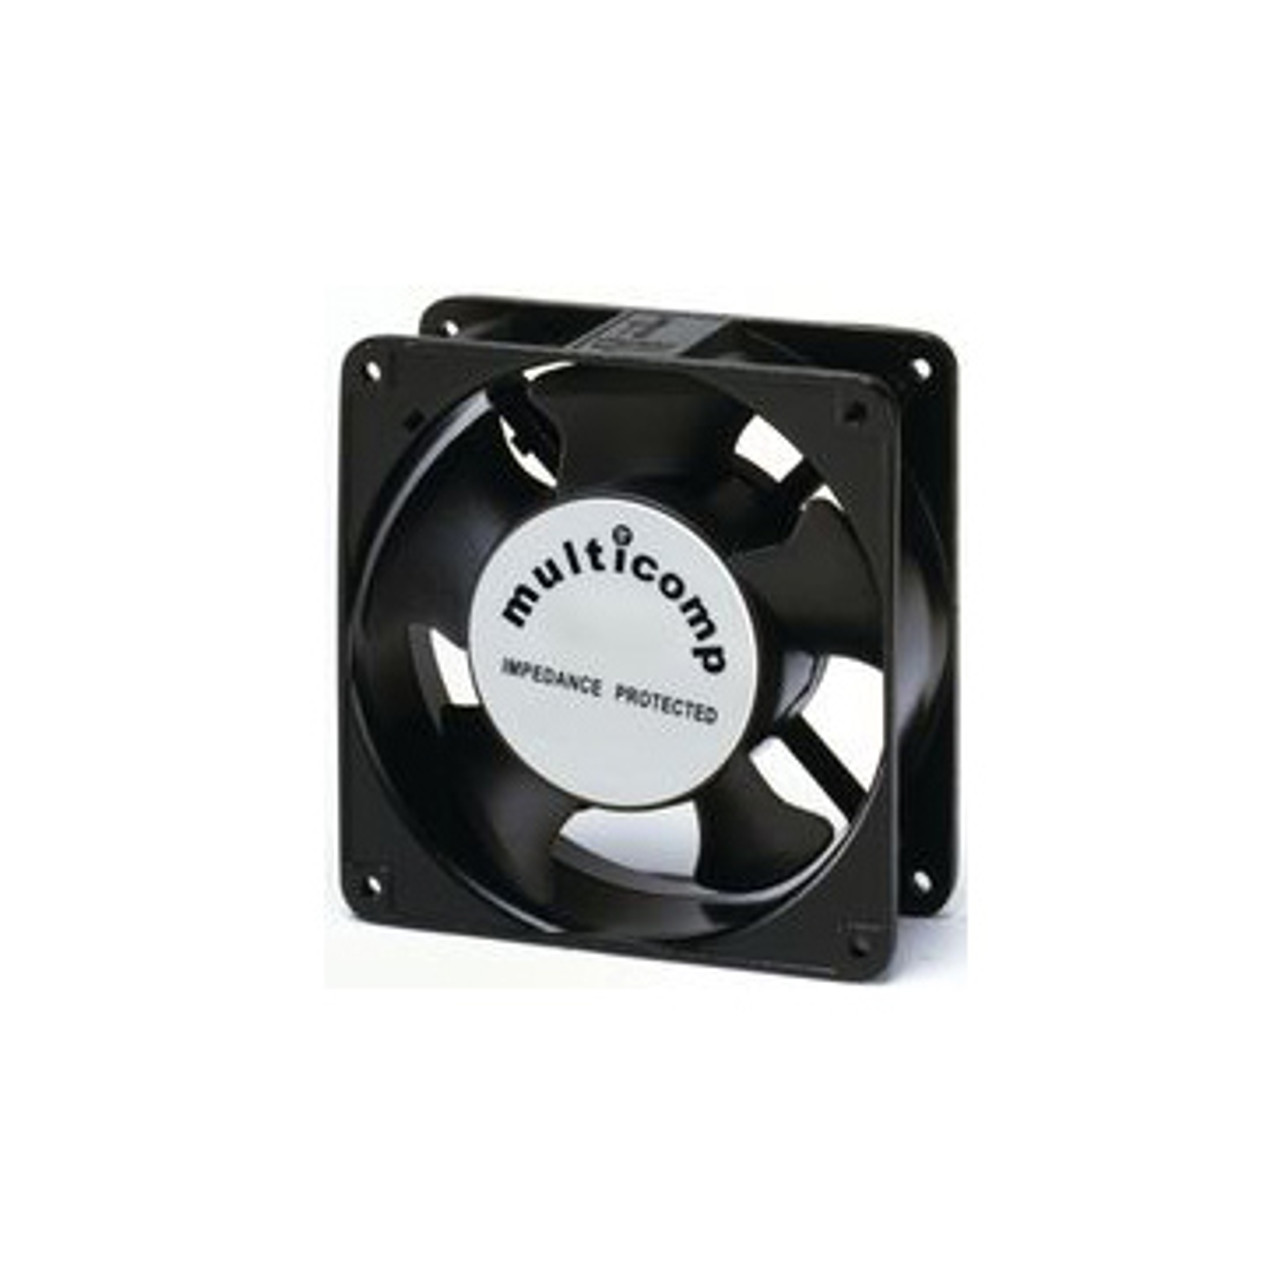 Muffin Fan, 119mm, 115VAC 50/60Hz